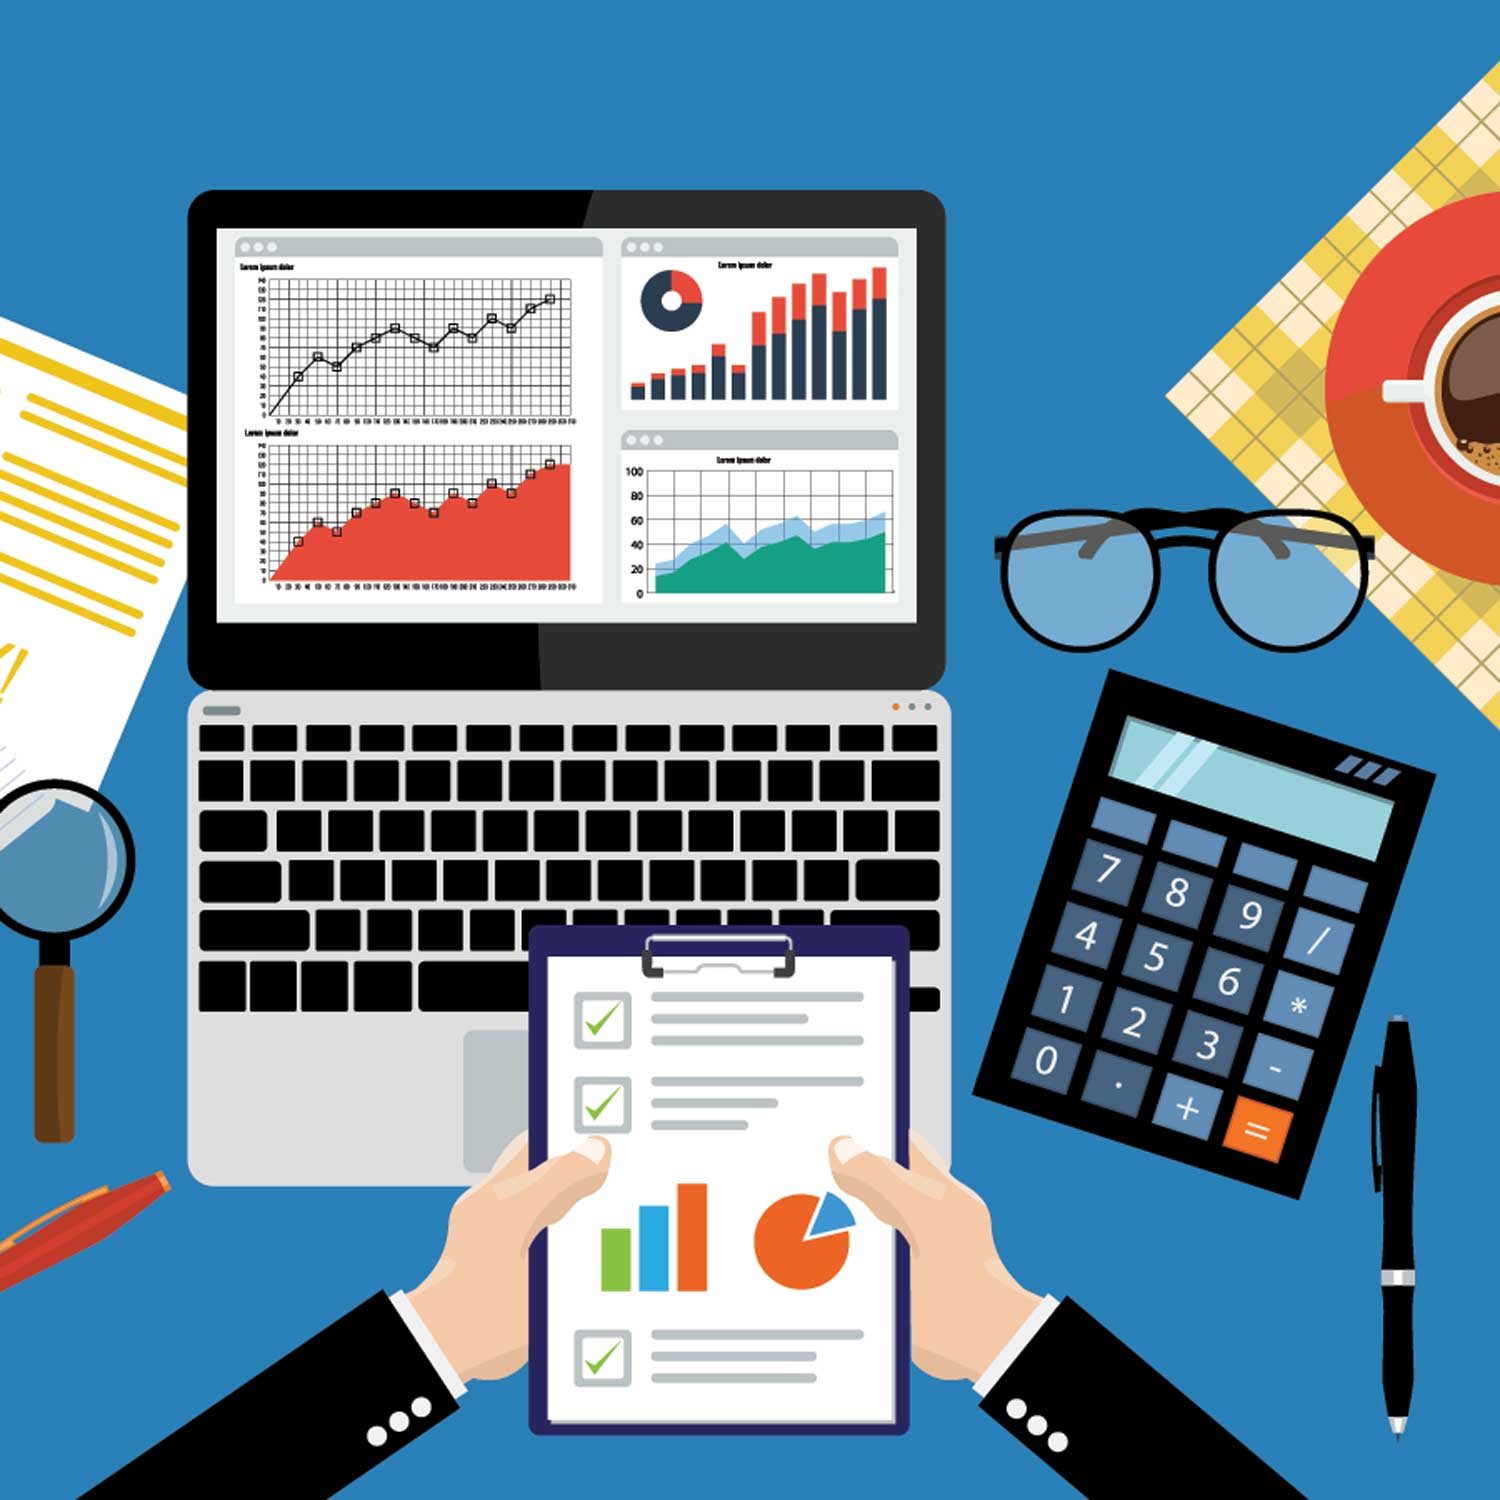 DIY Payroll - Client will handle payroll using our system which will automate payroll tasks. NAC Payroll will help with setup and customer service issues.